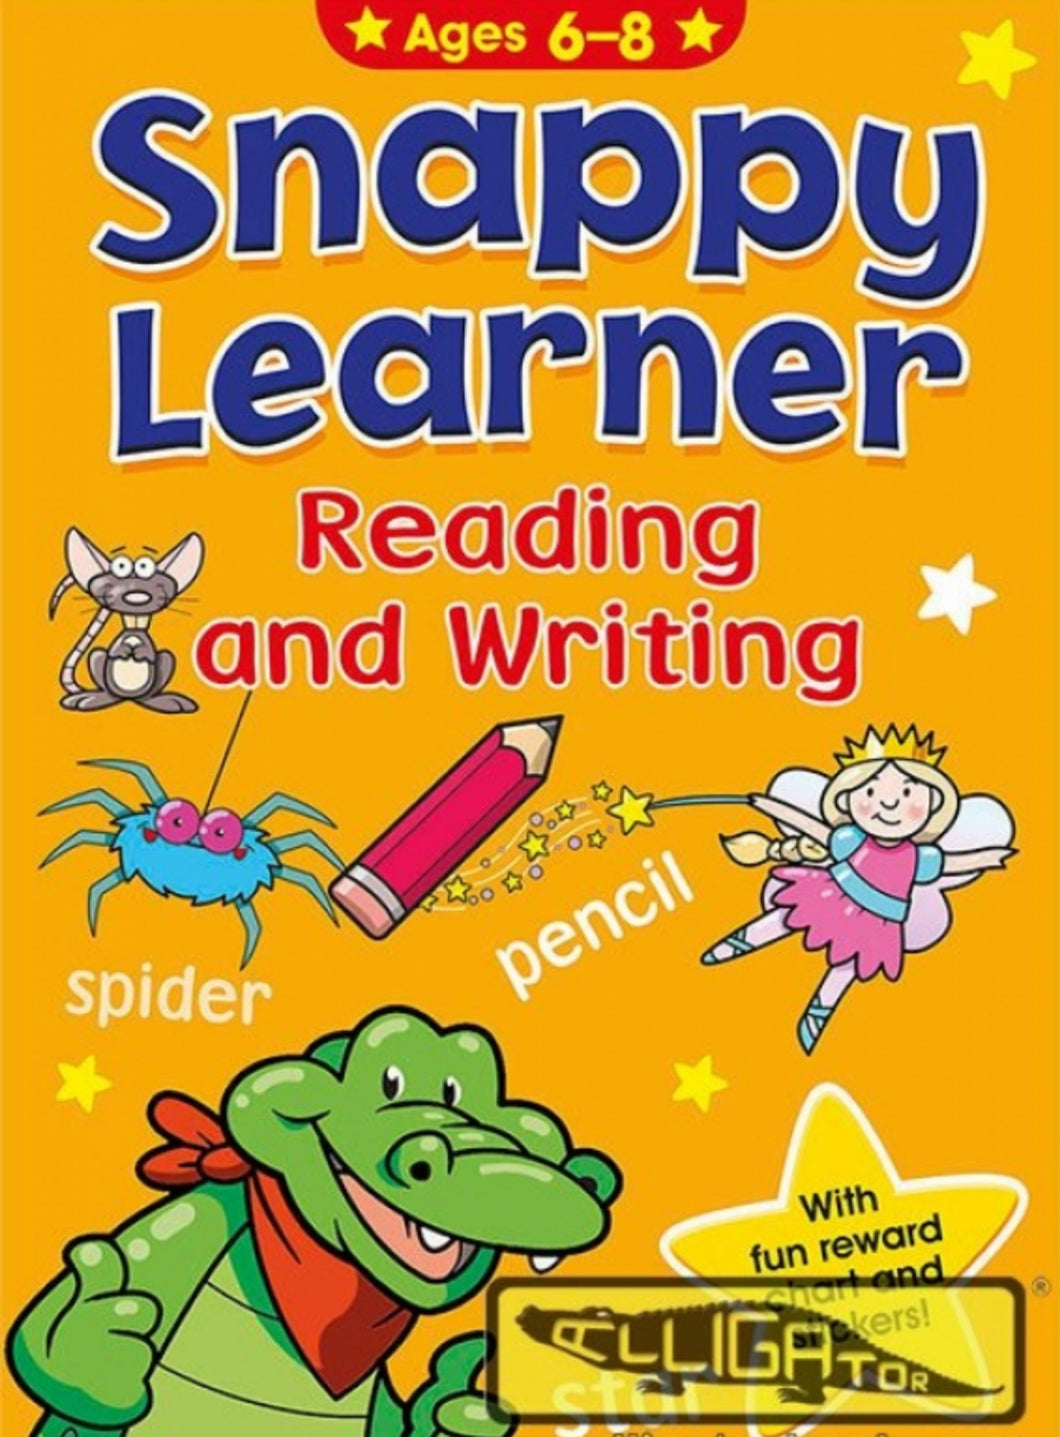 SNAPPY LEARNERS READING AND WRITING